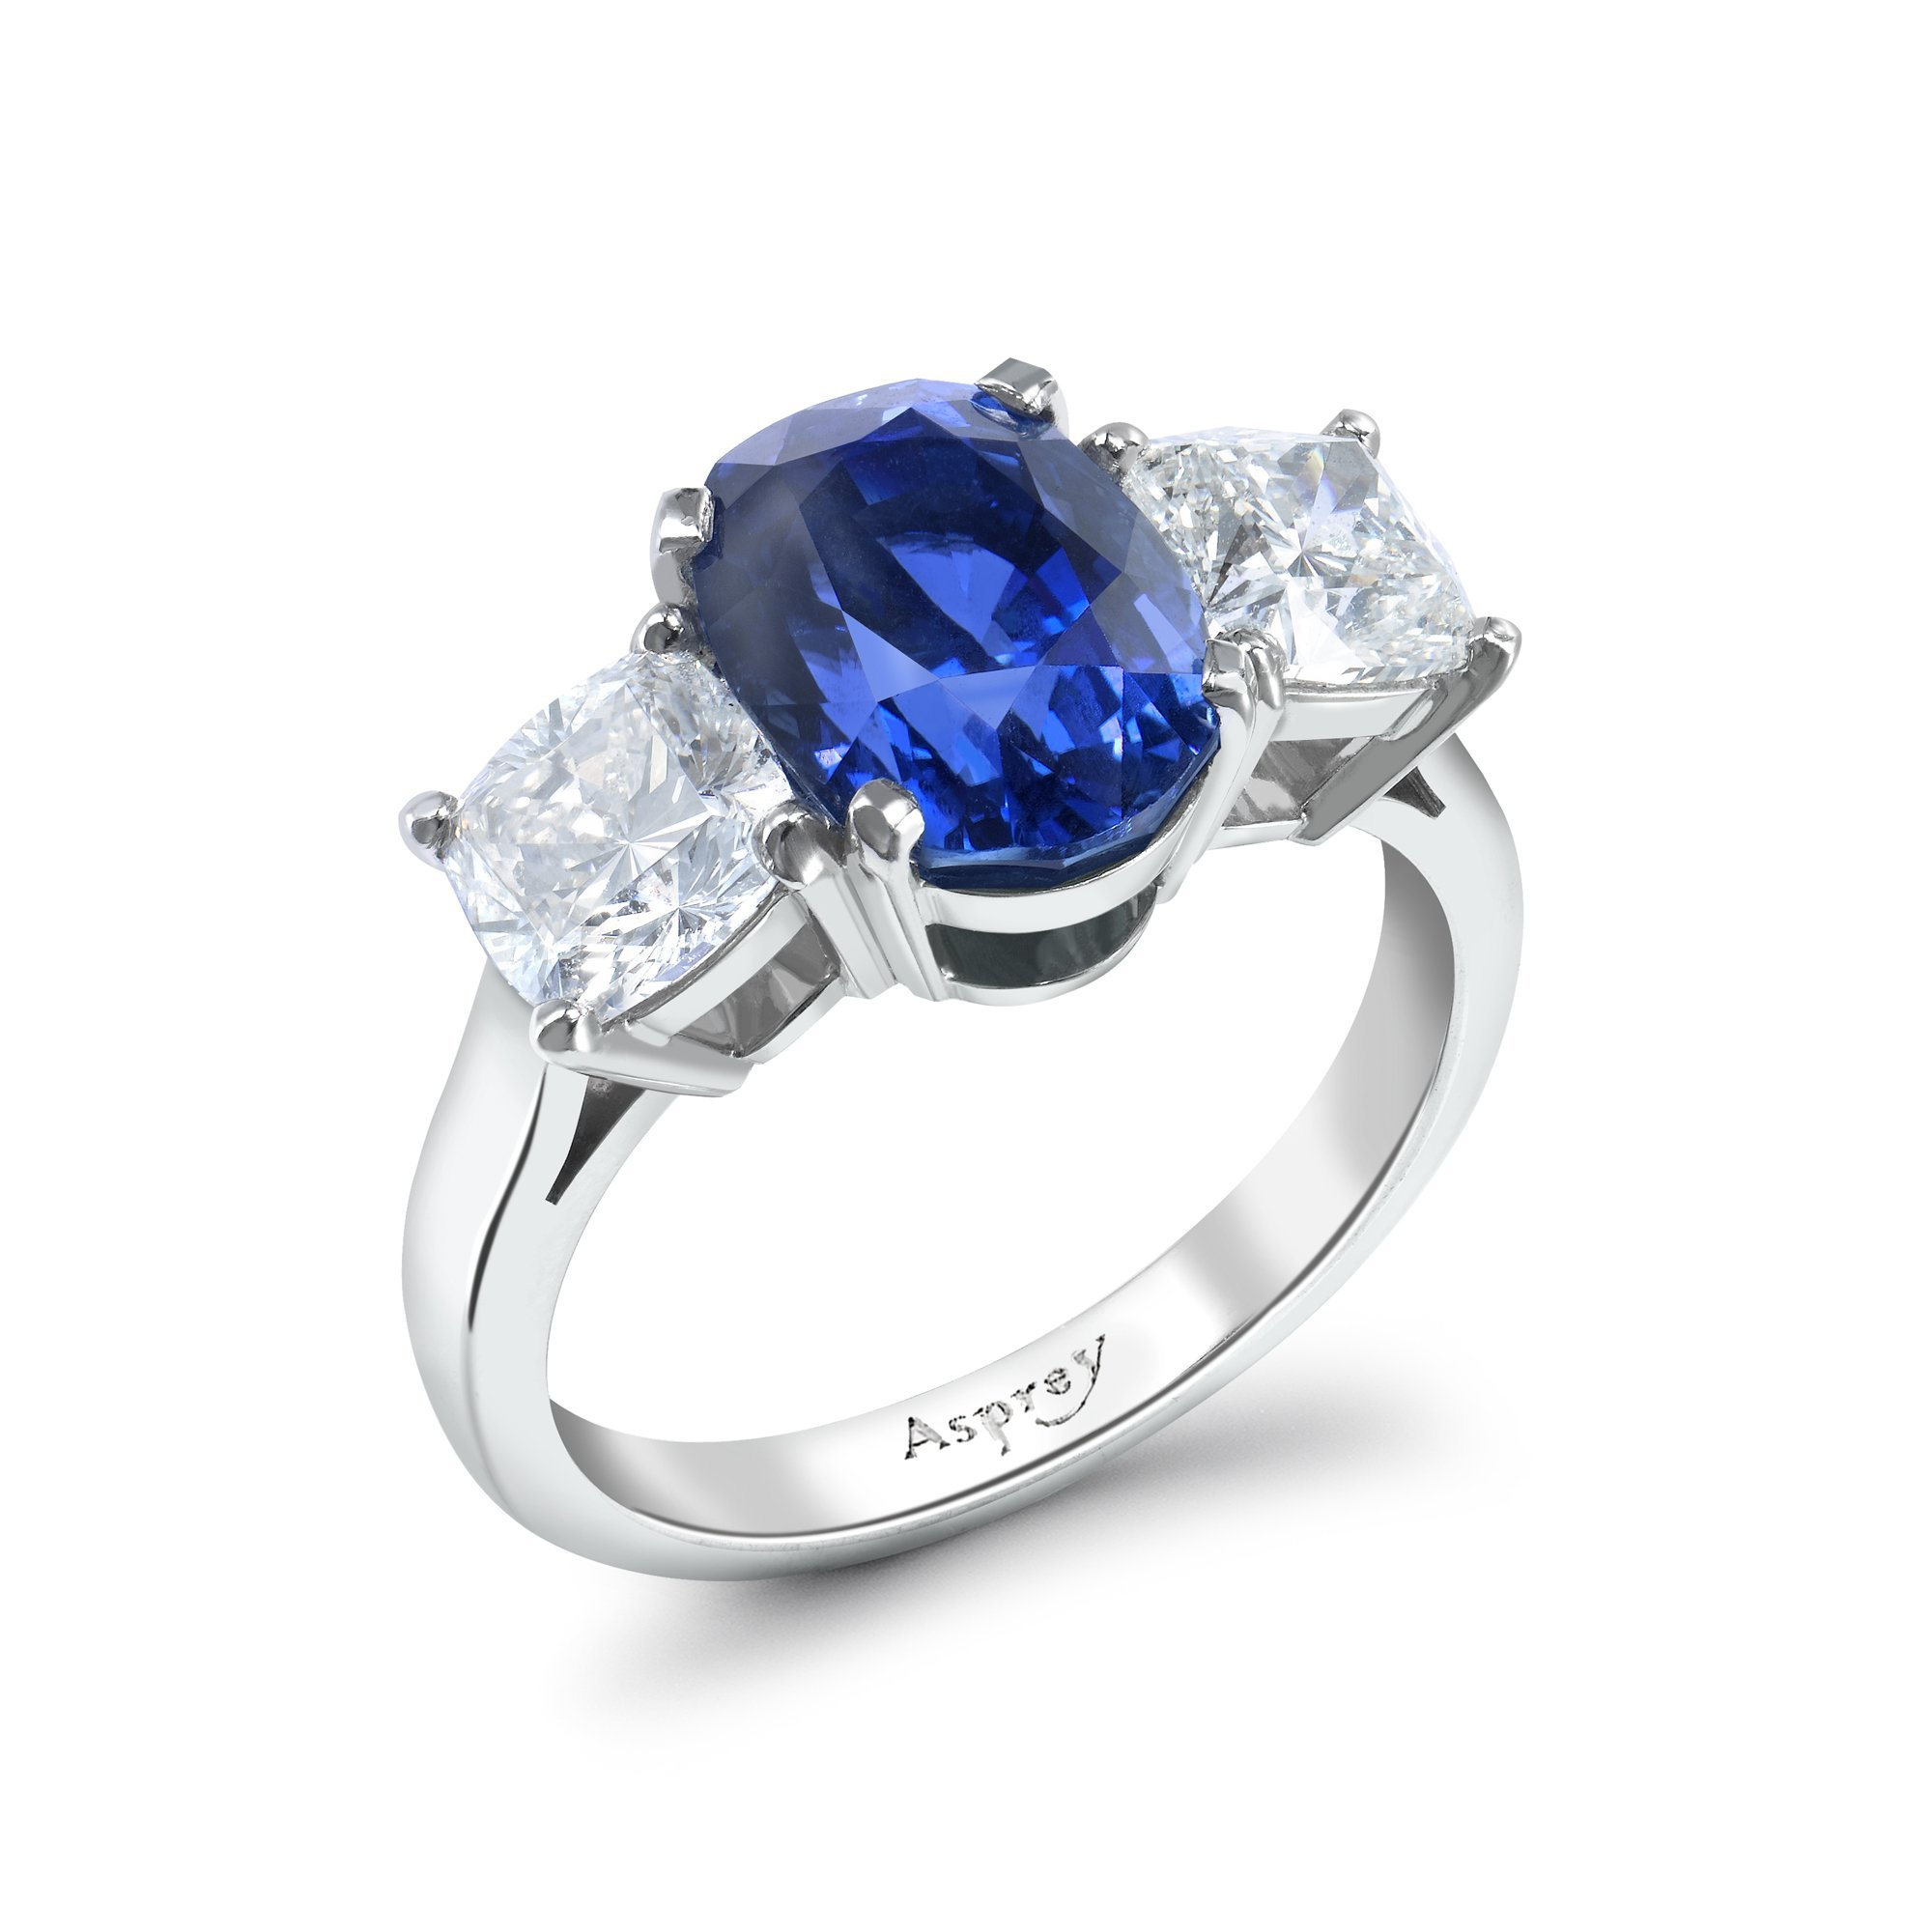 Sapphire Engagement Rings Tiffany Wedding and Bridal Inspiration